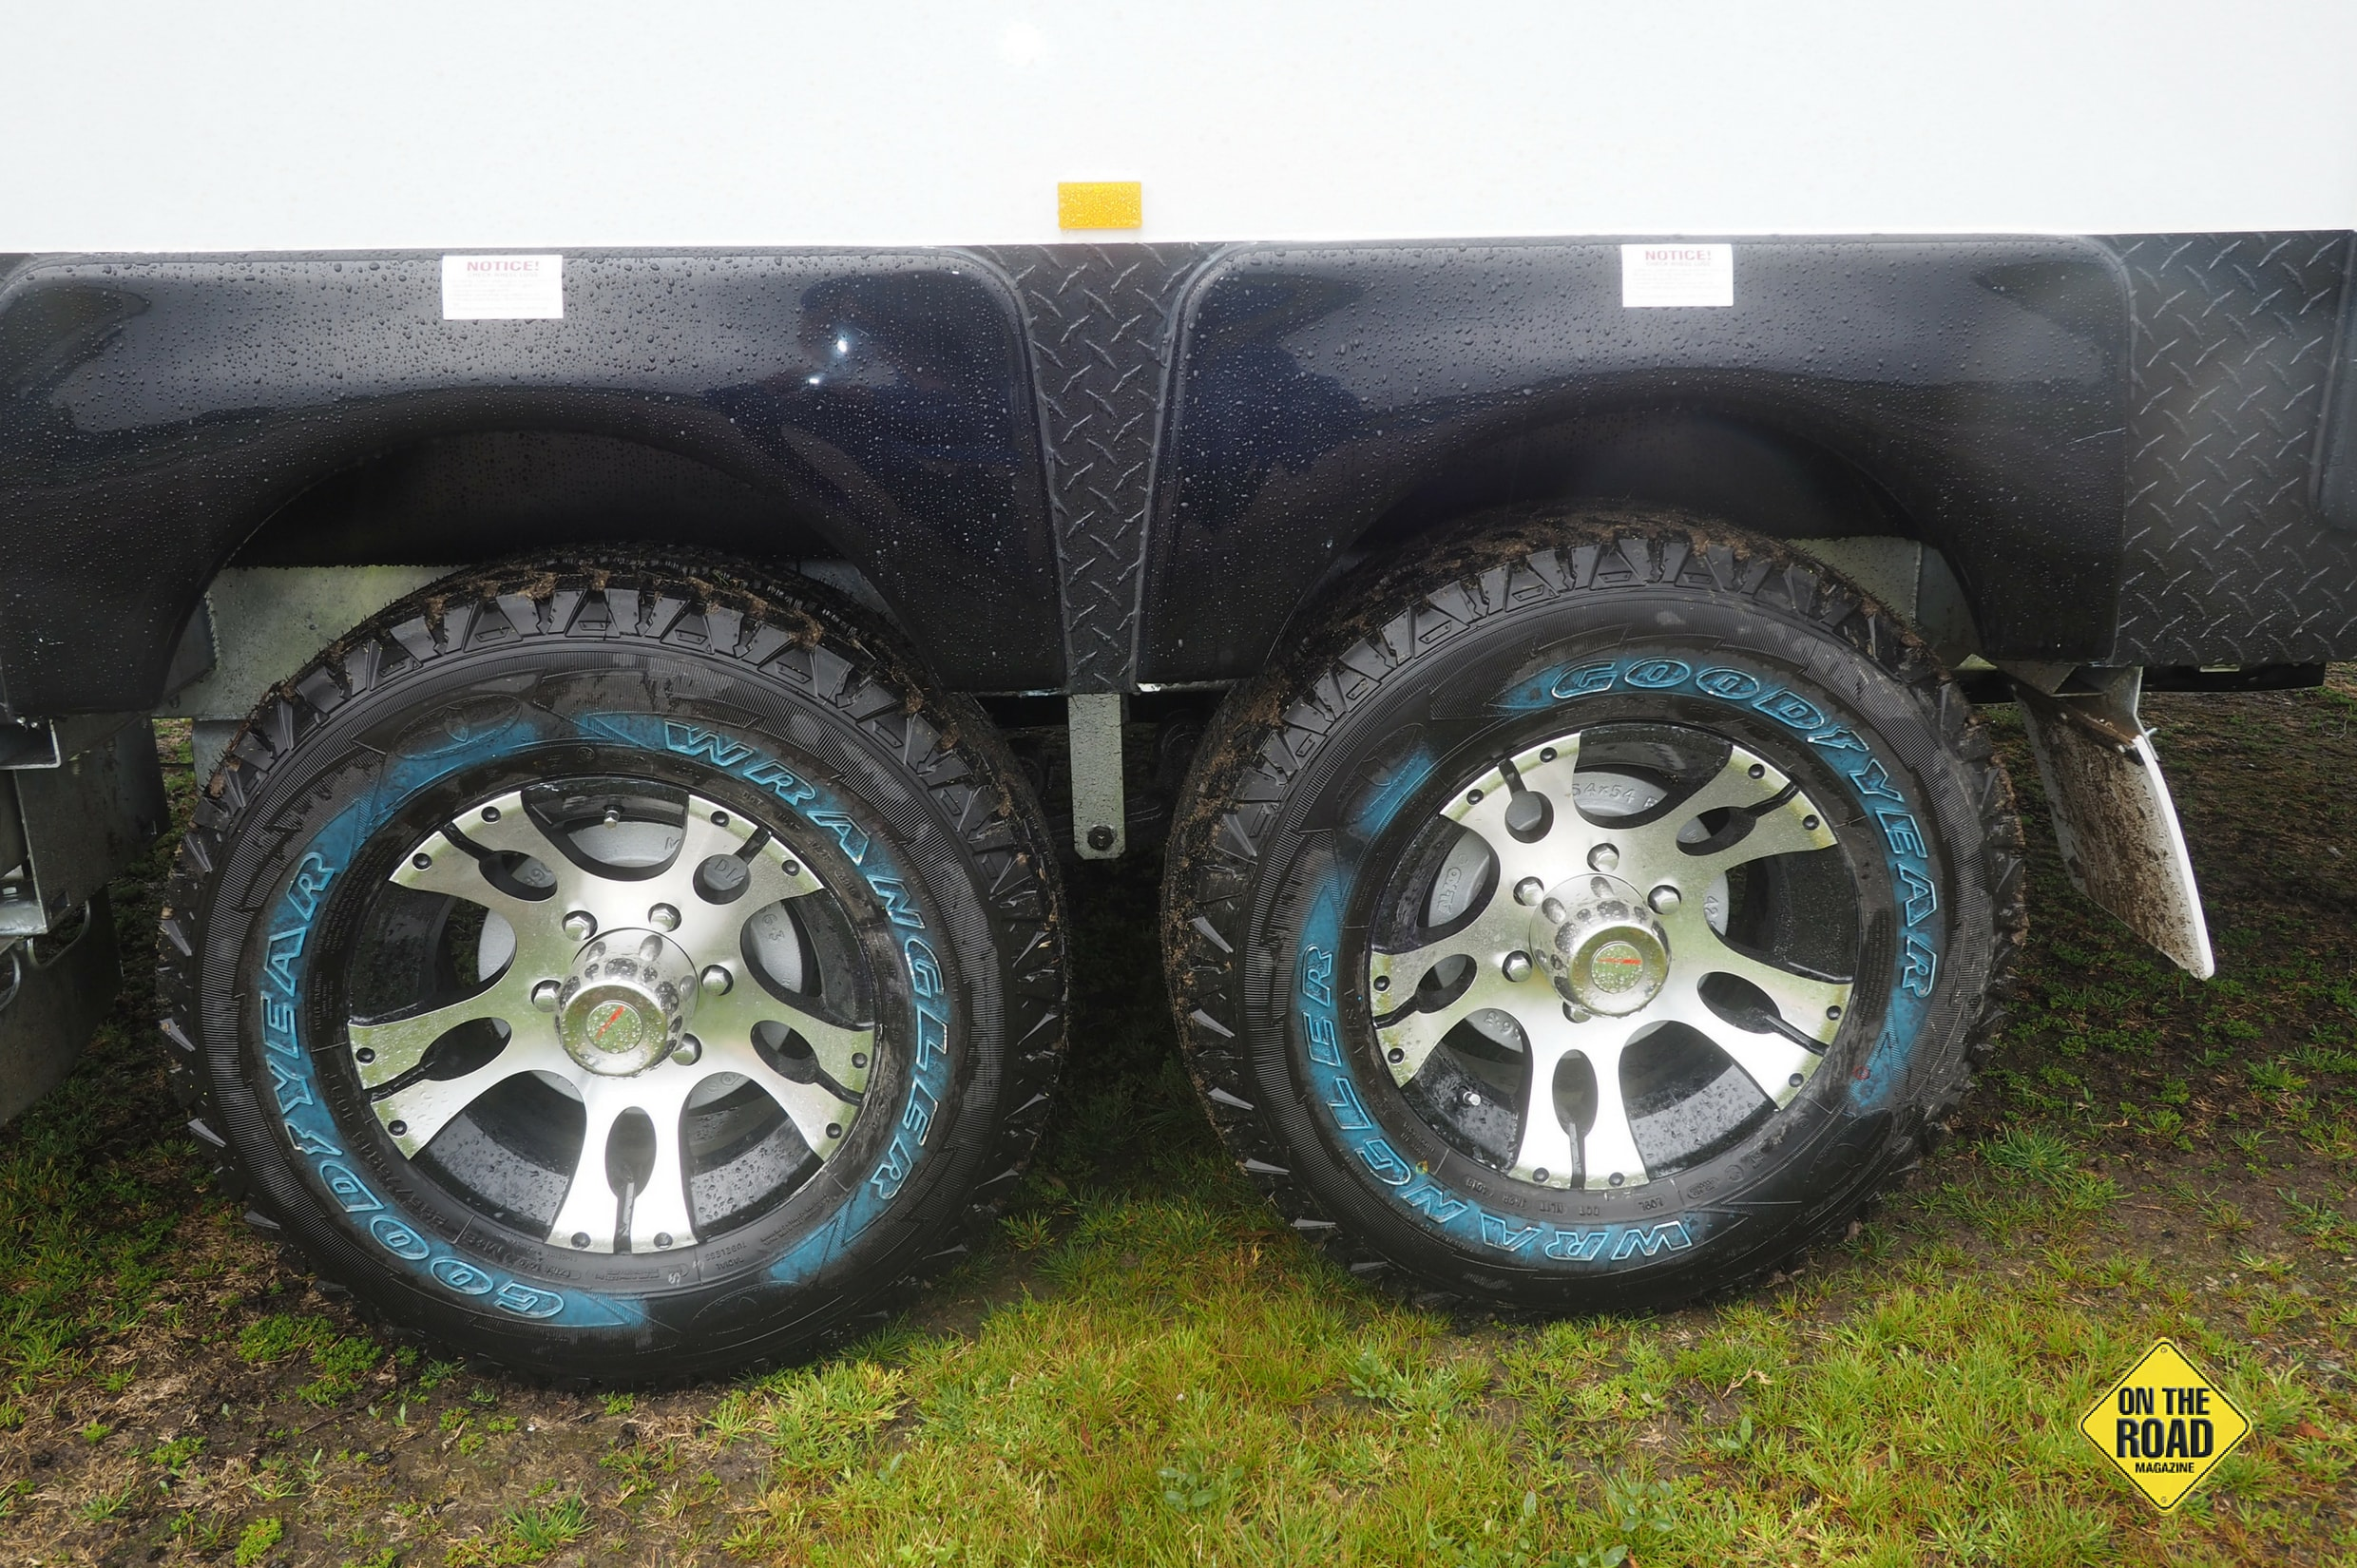 Alloy wheels set the look off really well